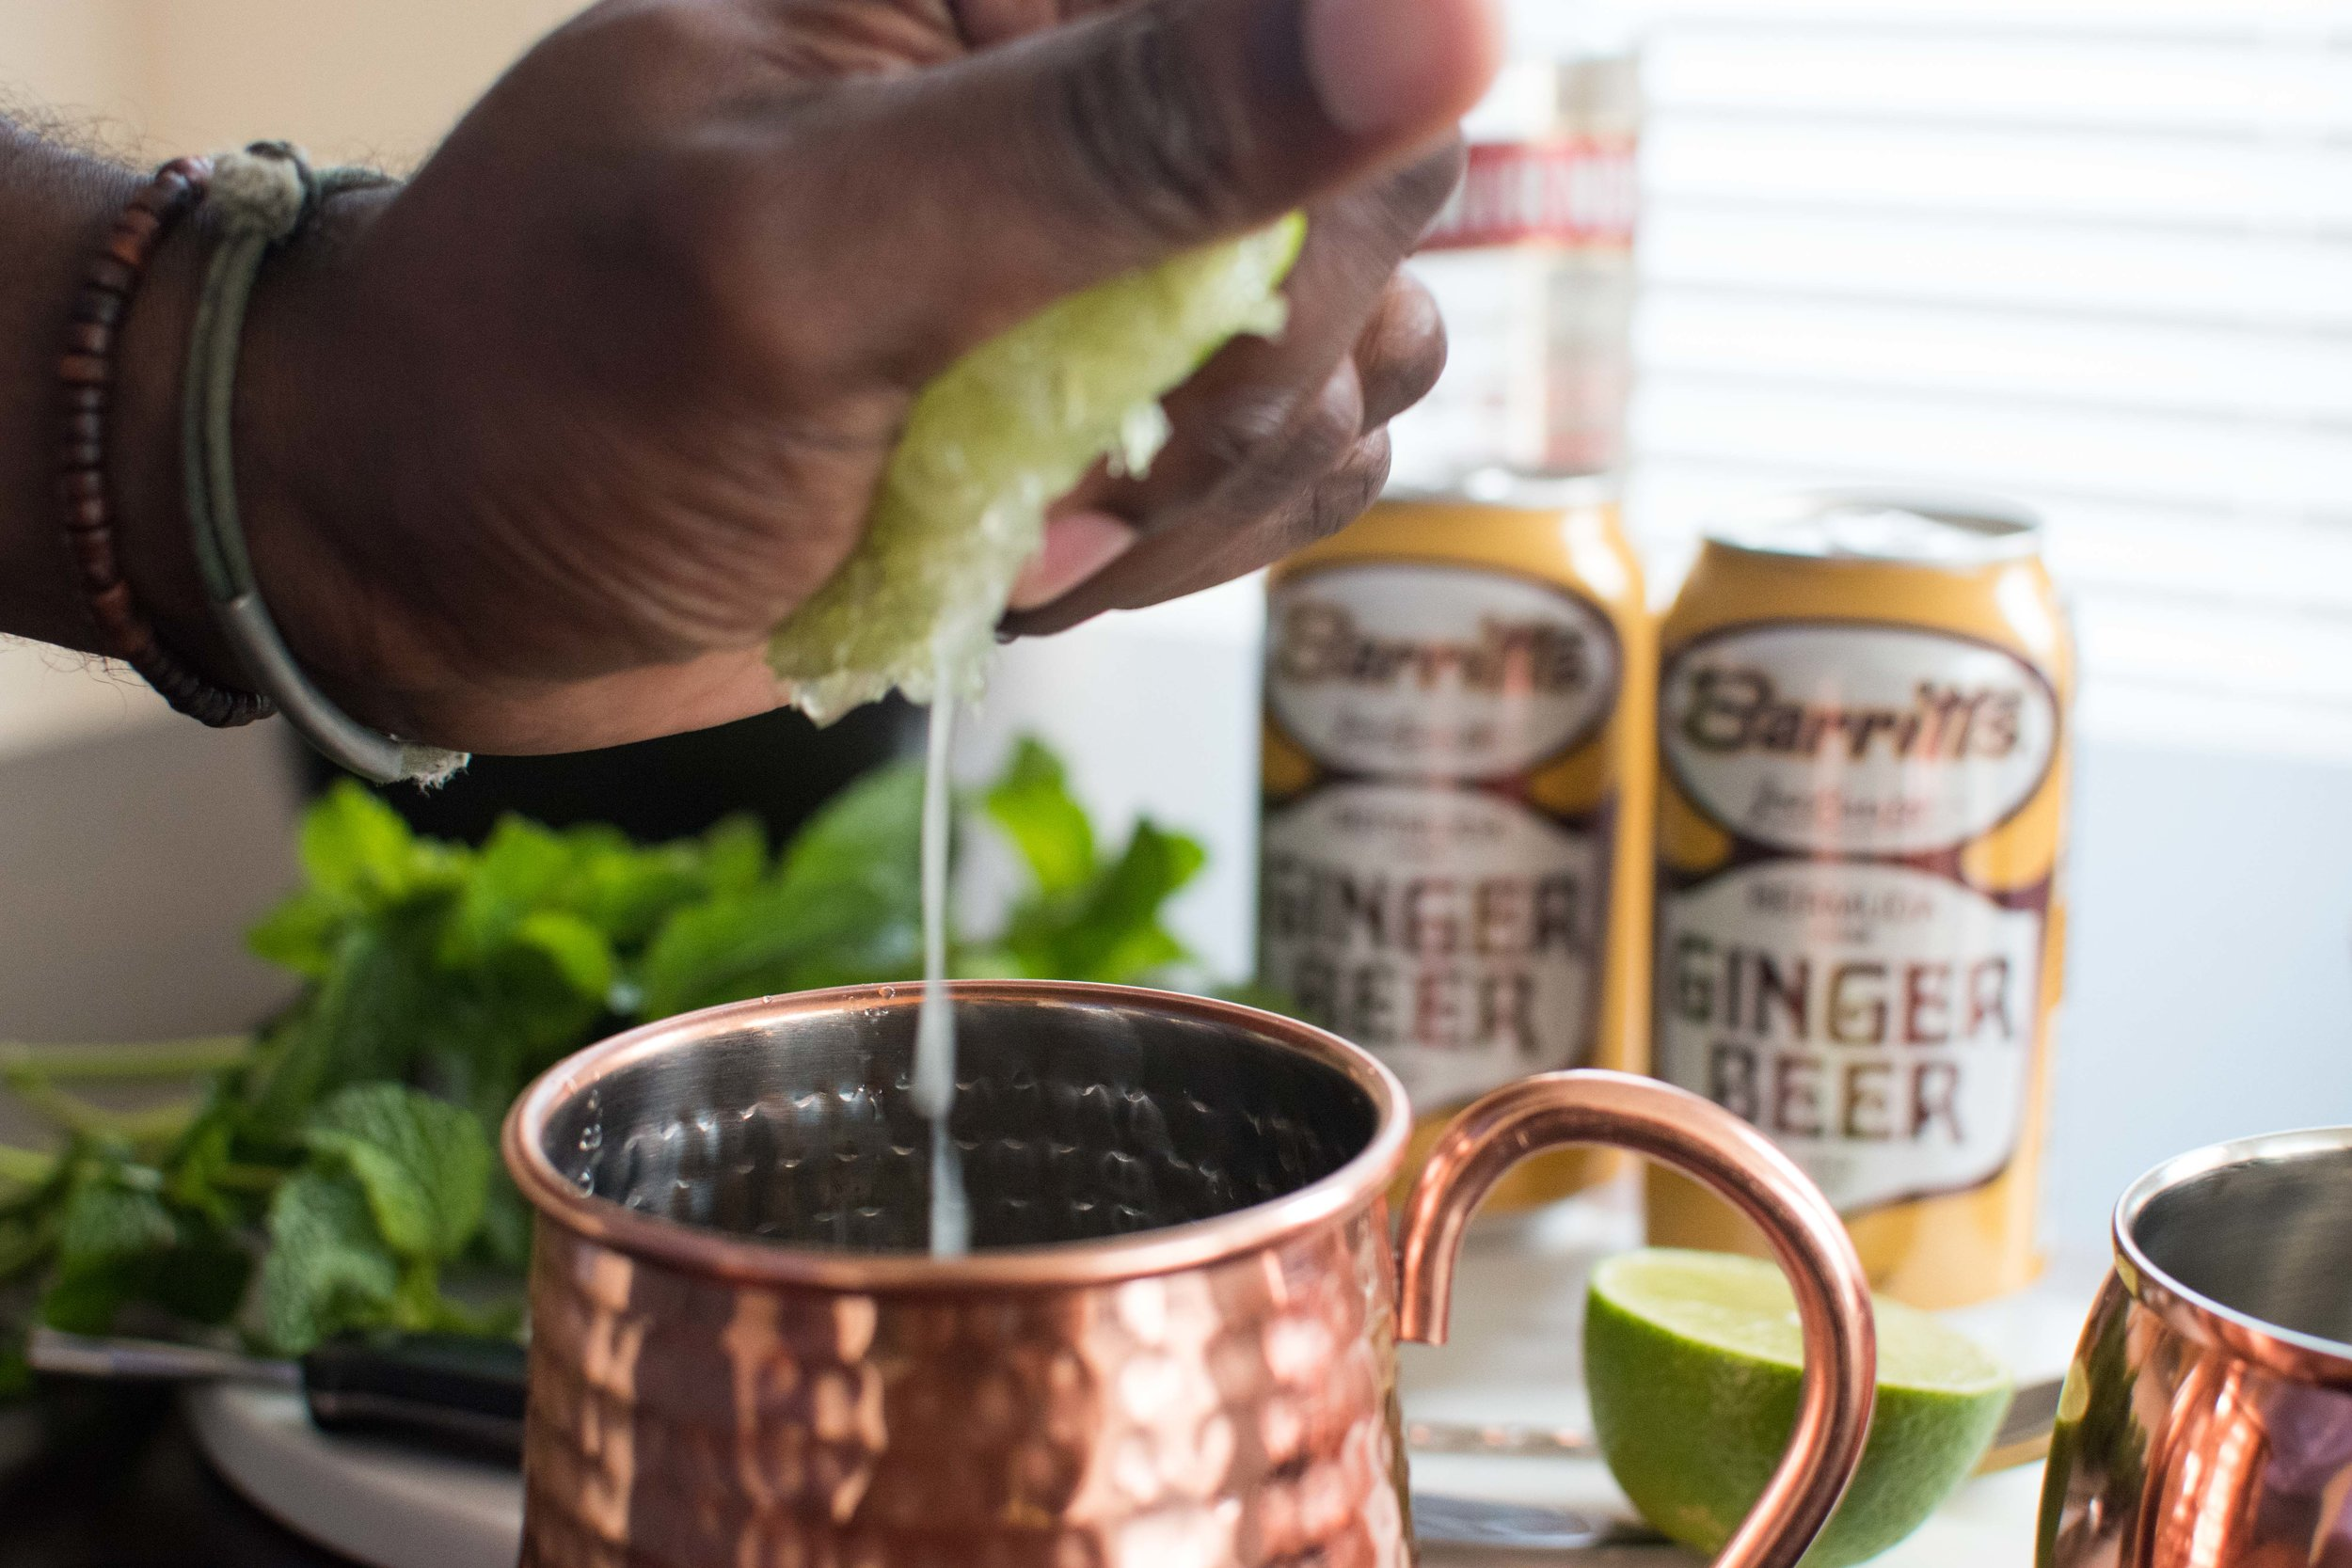 Moscow Mule Recipe Barritts Ginger Beer-22.jpg